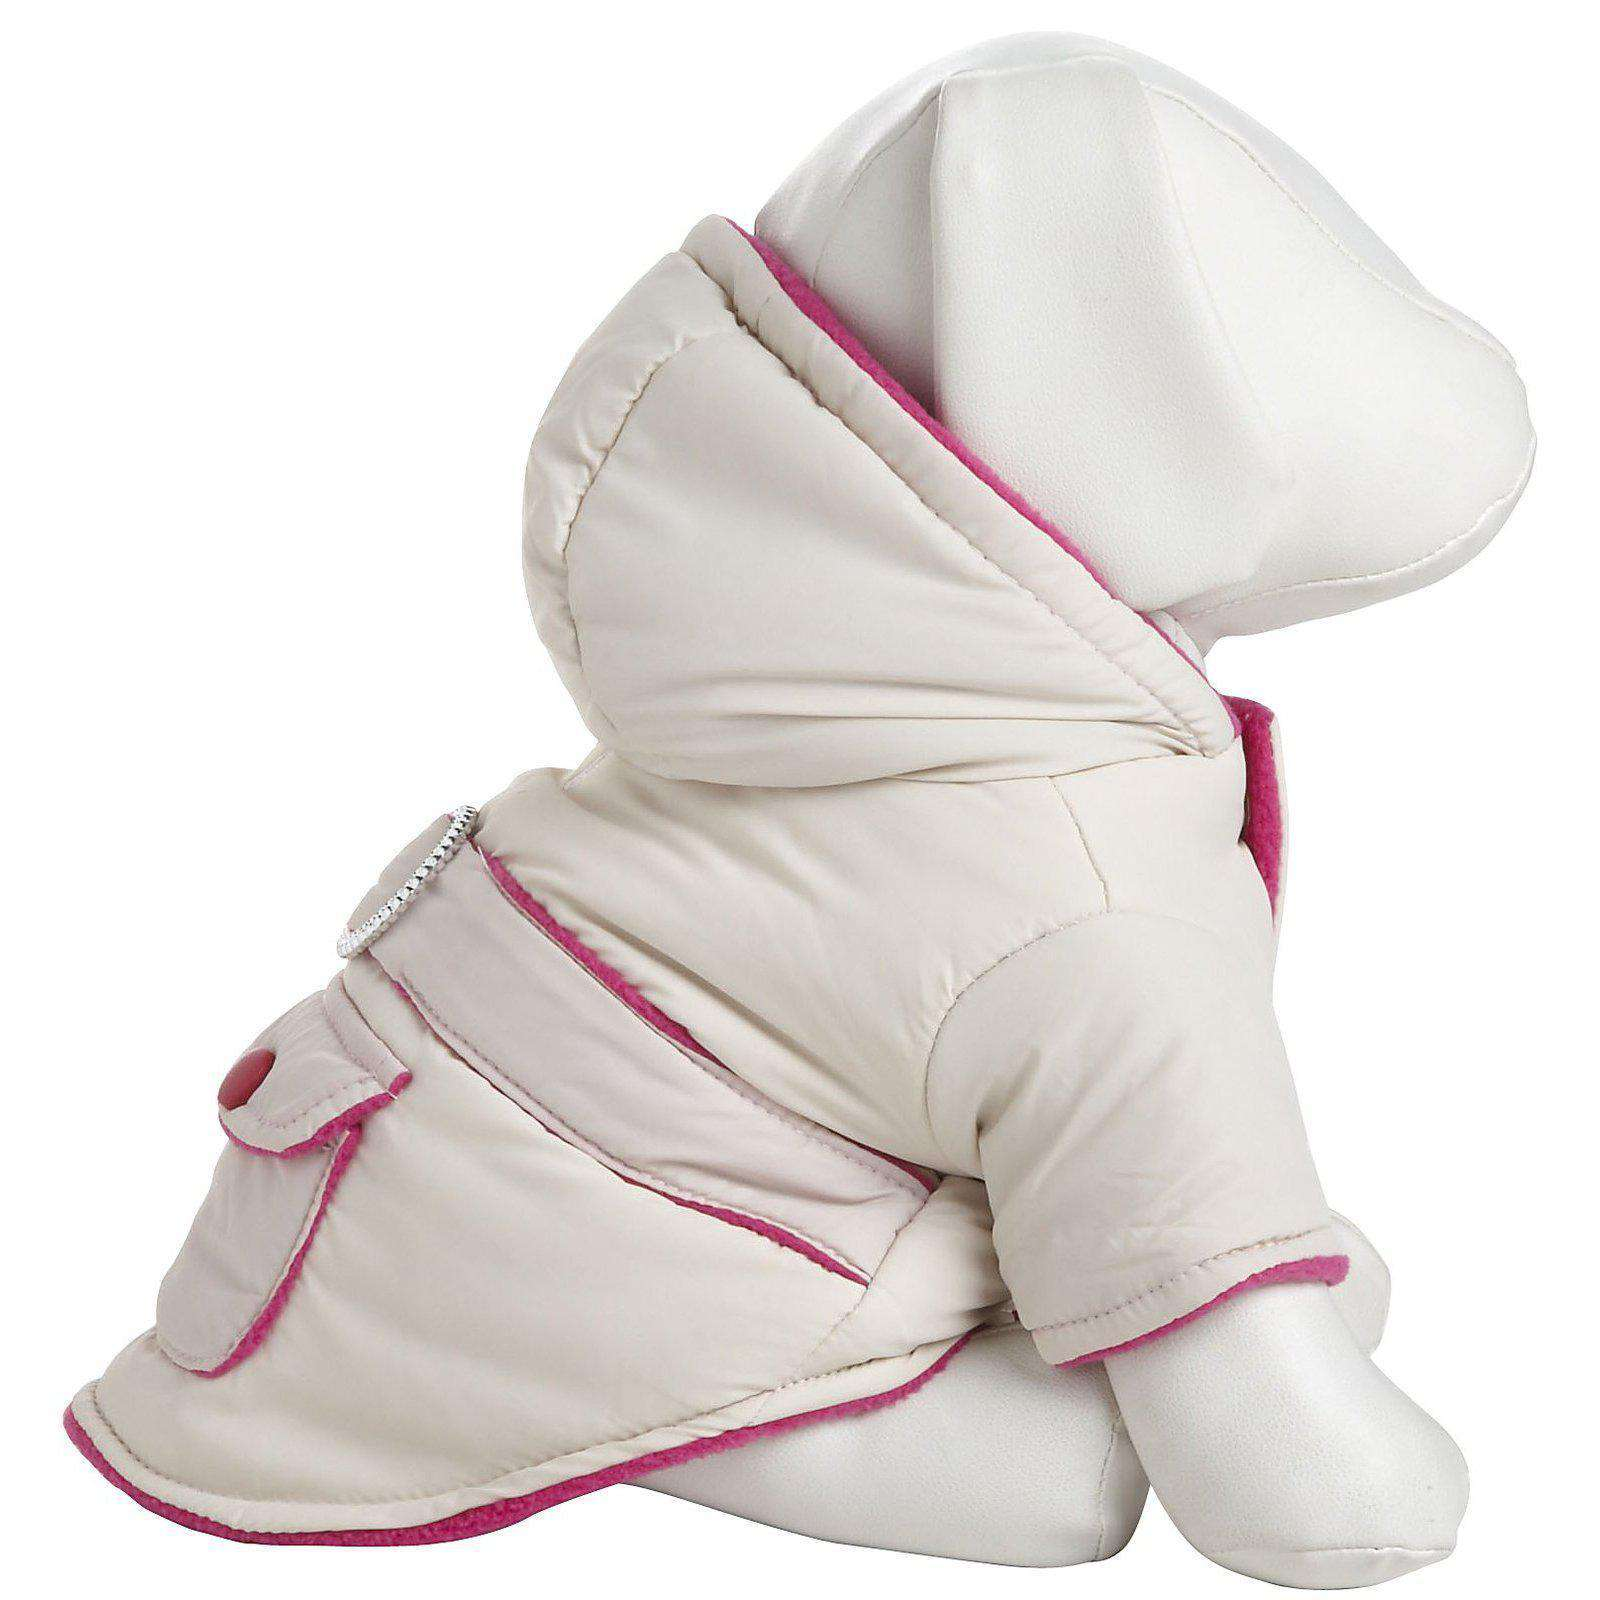 Double-Toned Jewel Pet Jacket - Beige And Pink-Pet Life-DirtyFurClothing